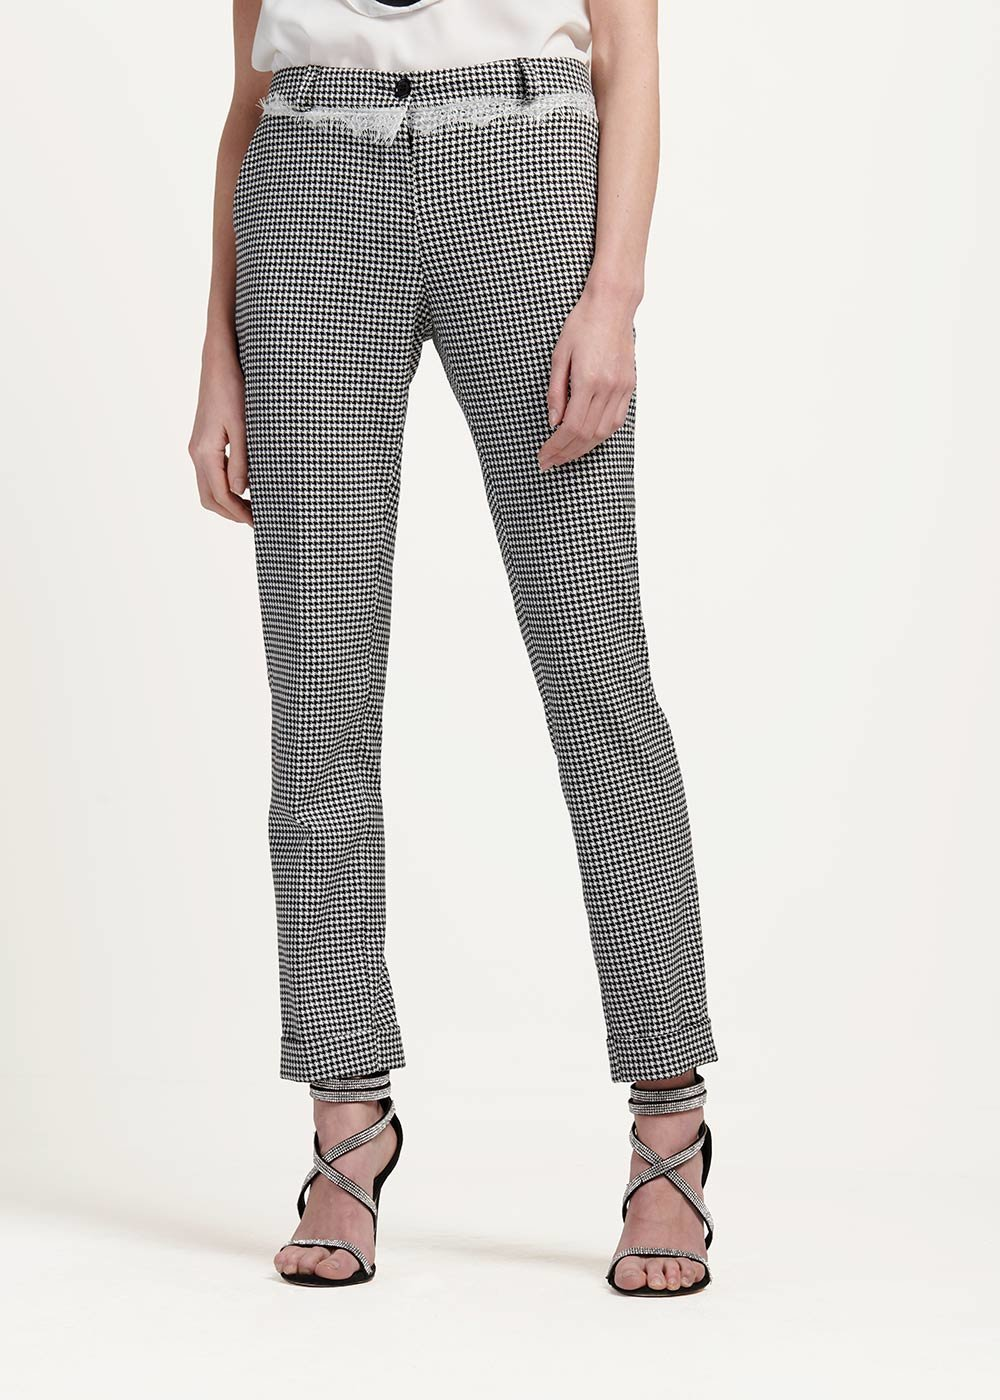 Bella trousers with black&white pattern - White Black Fantasia - Woman